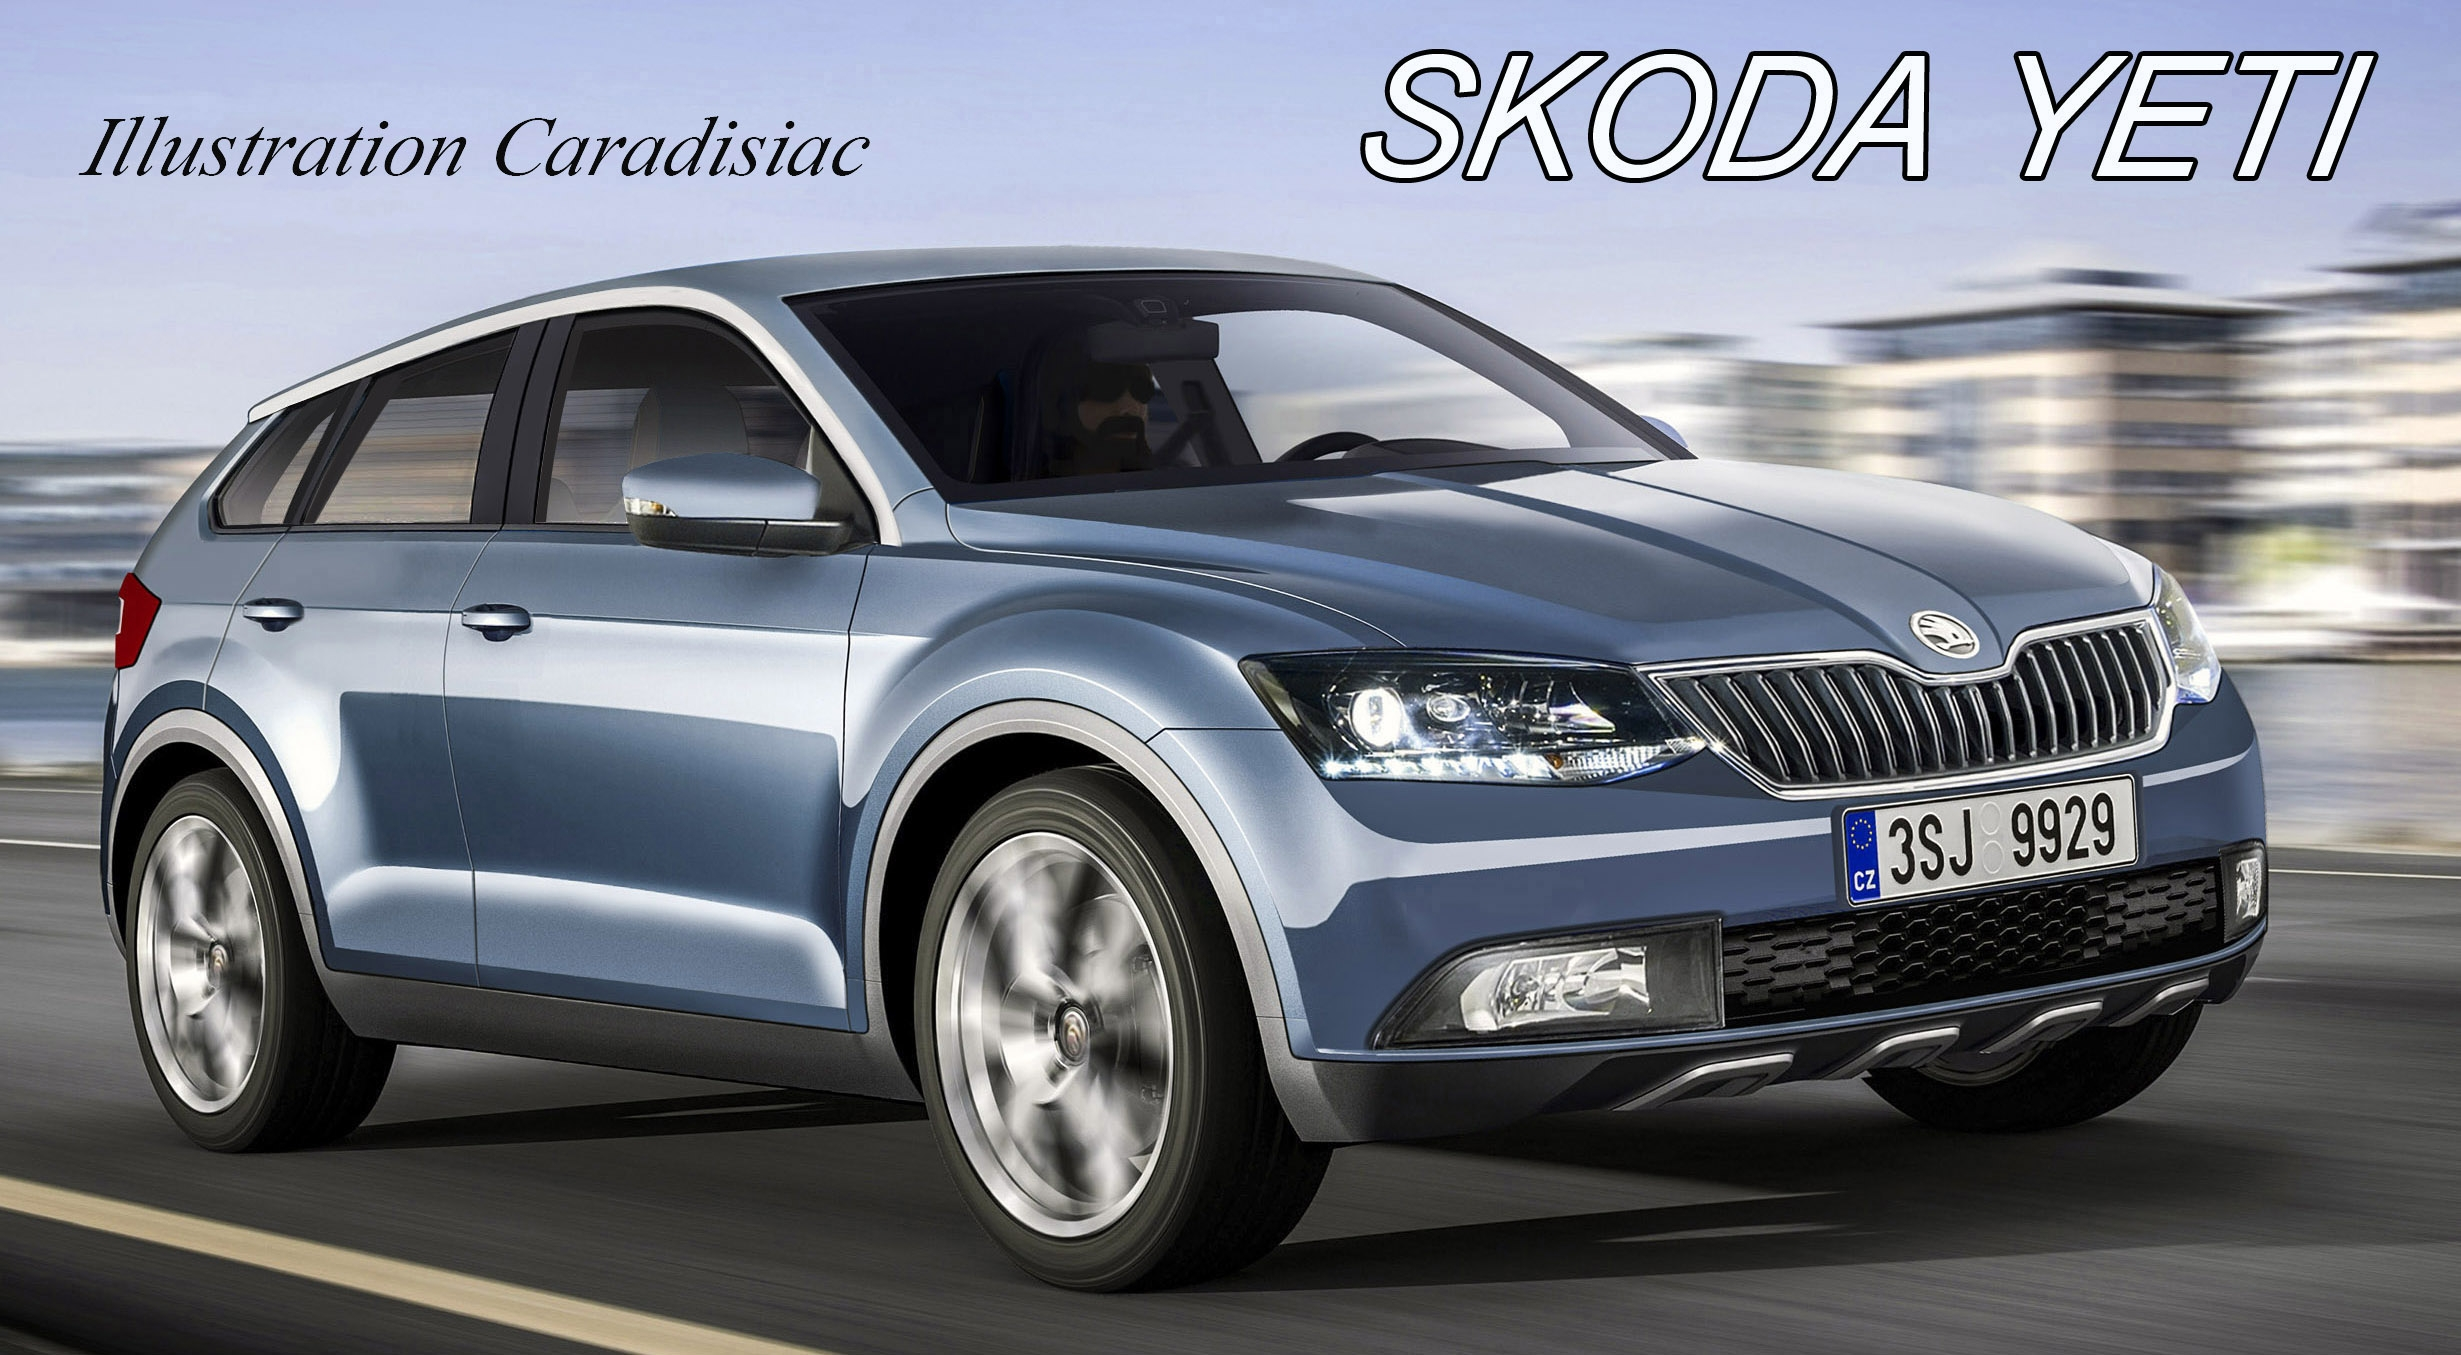 voiture suv skoda. Black Bedroom Furniture Sets. Home Design Ideas